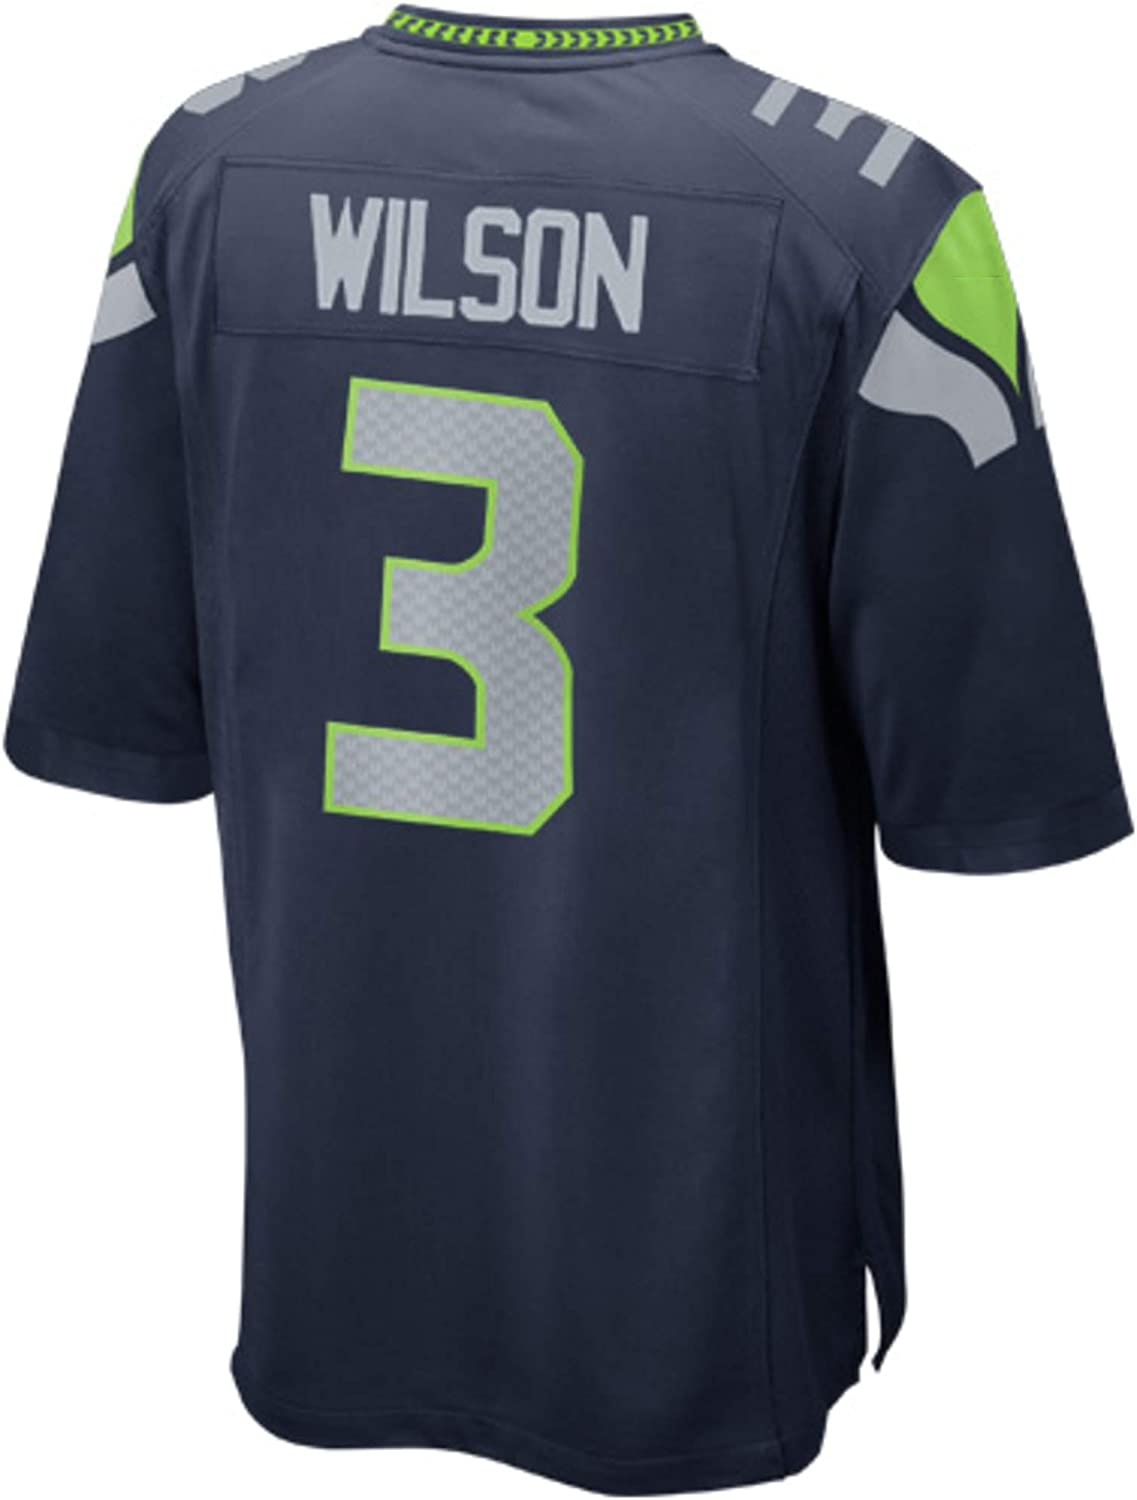 Mens//Woman/_#3/_Russell/_Wilson/_College/_Navy/_Game/_Jersey